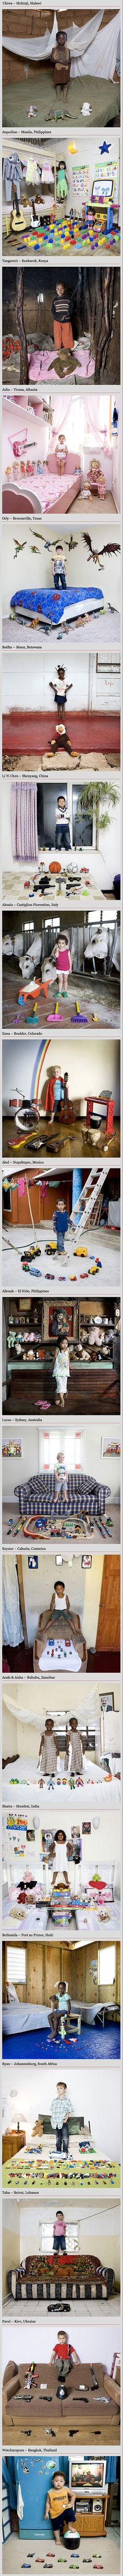 Toys can tell a whole story about the child's background and family, and even the professions of the parents. In his photo series 'Toy Stories', Italian photographer Gabriele Galimberti traveled around the globe for 18-months and photographed children with their toys.